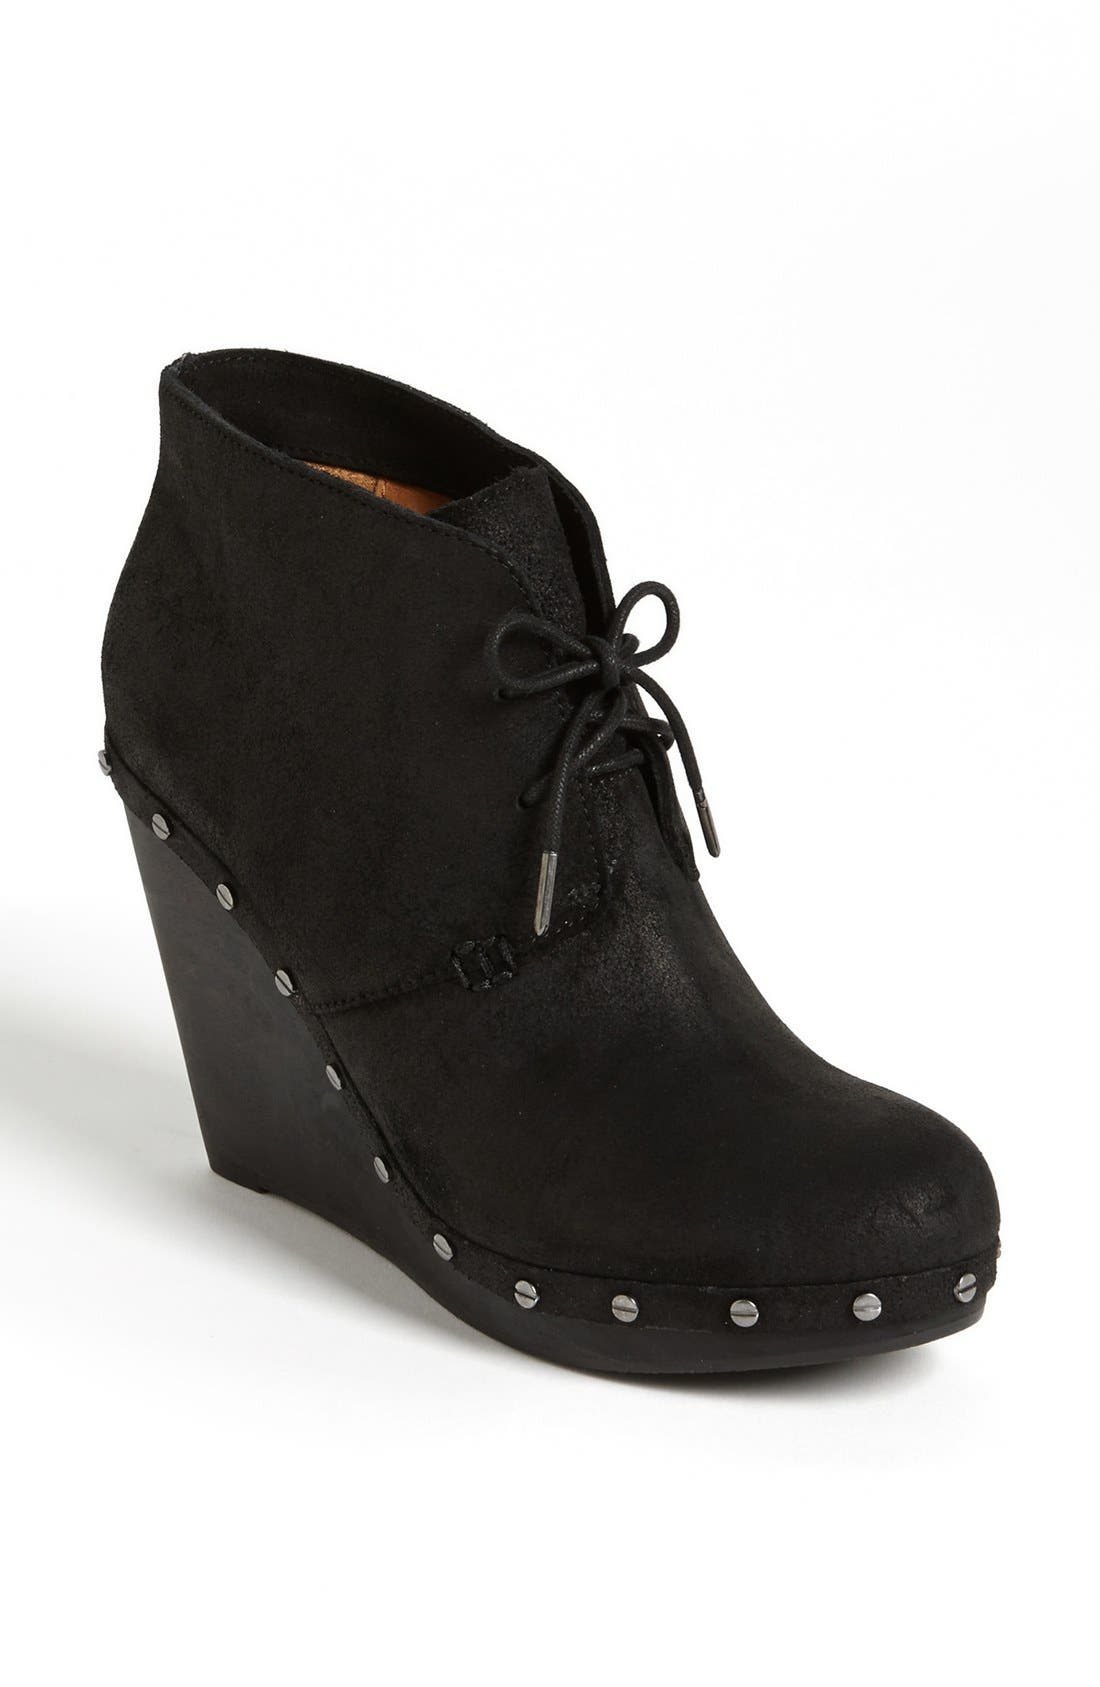 Alternate Image 1 Selected - Dr. Scholl's Original Collection 'Aviator' Wedge Boot